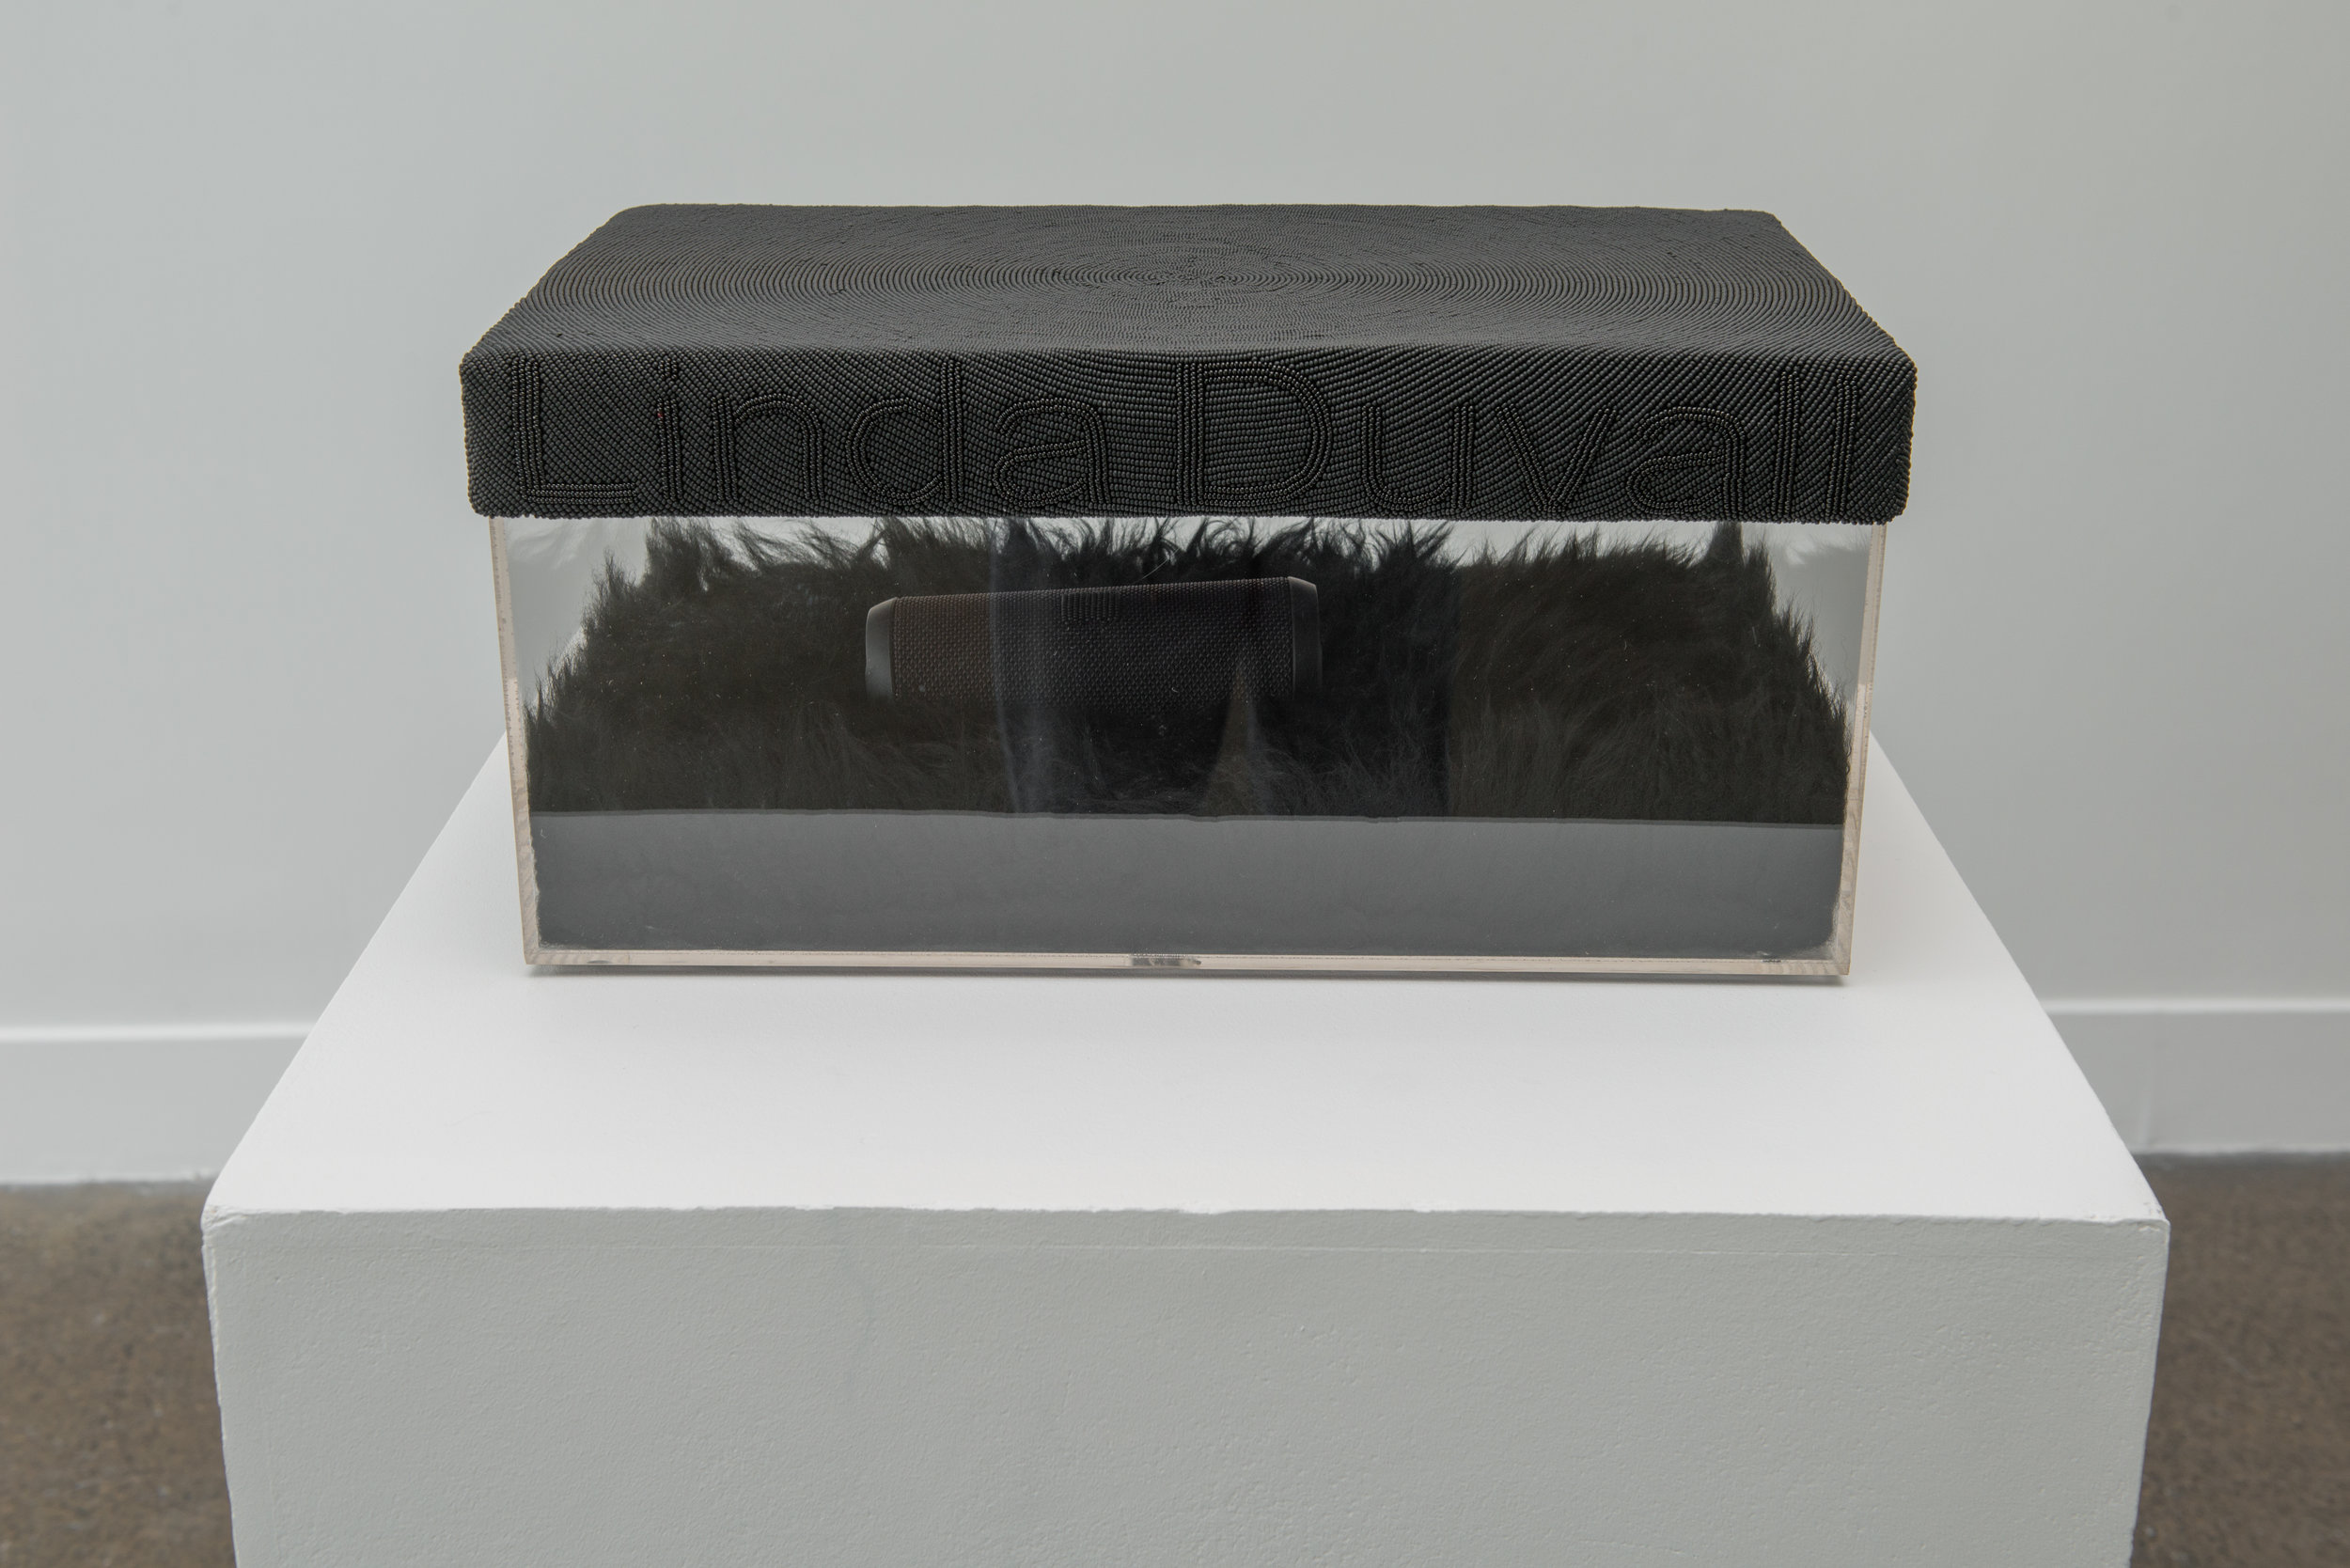 I thank her for every lesson , 2016, beads, plexi-glass, speakers, sound recording, black bear fur, 45.7 x 26.7 x 20.3cm